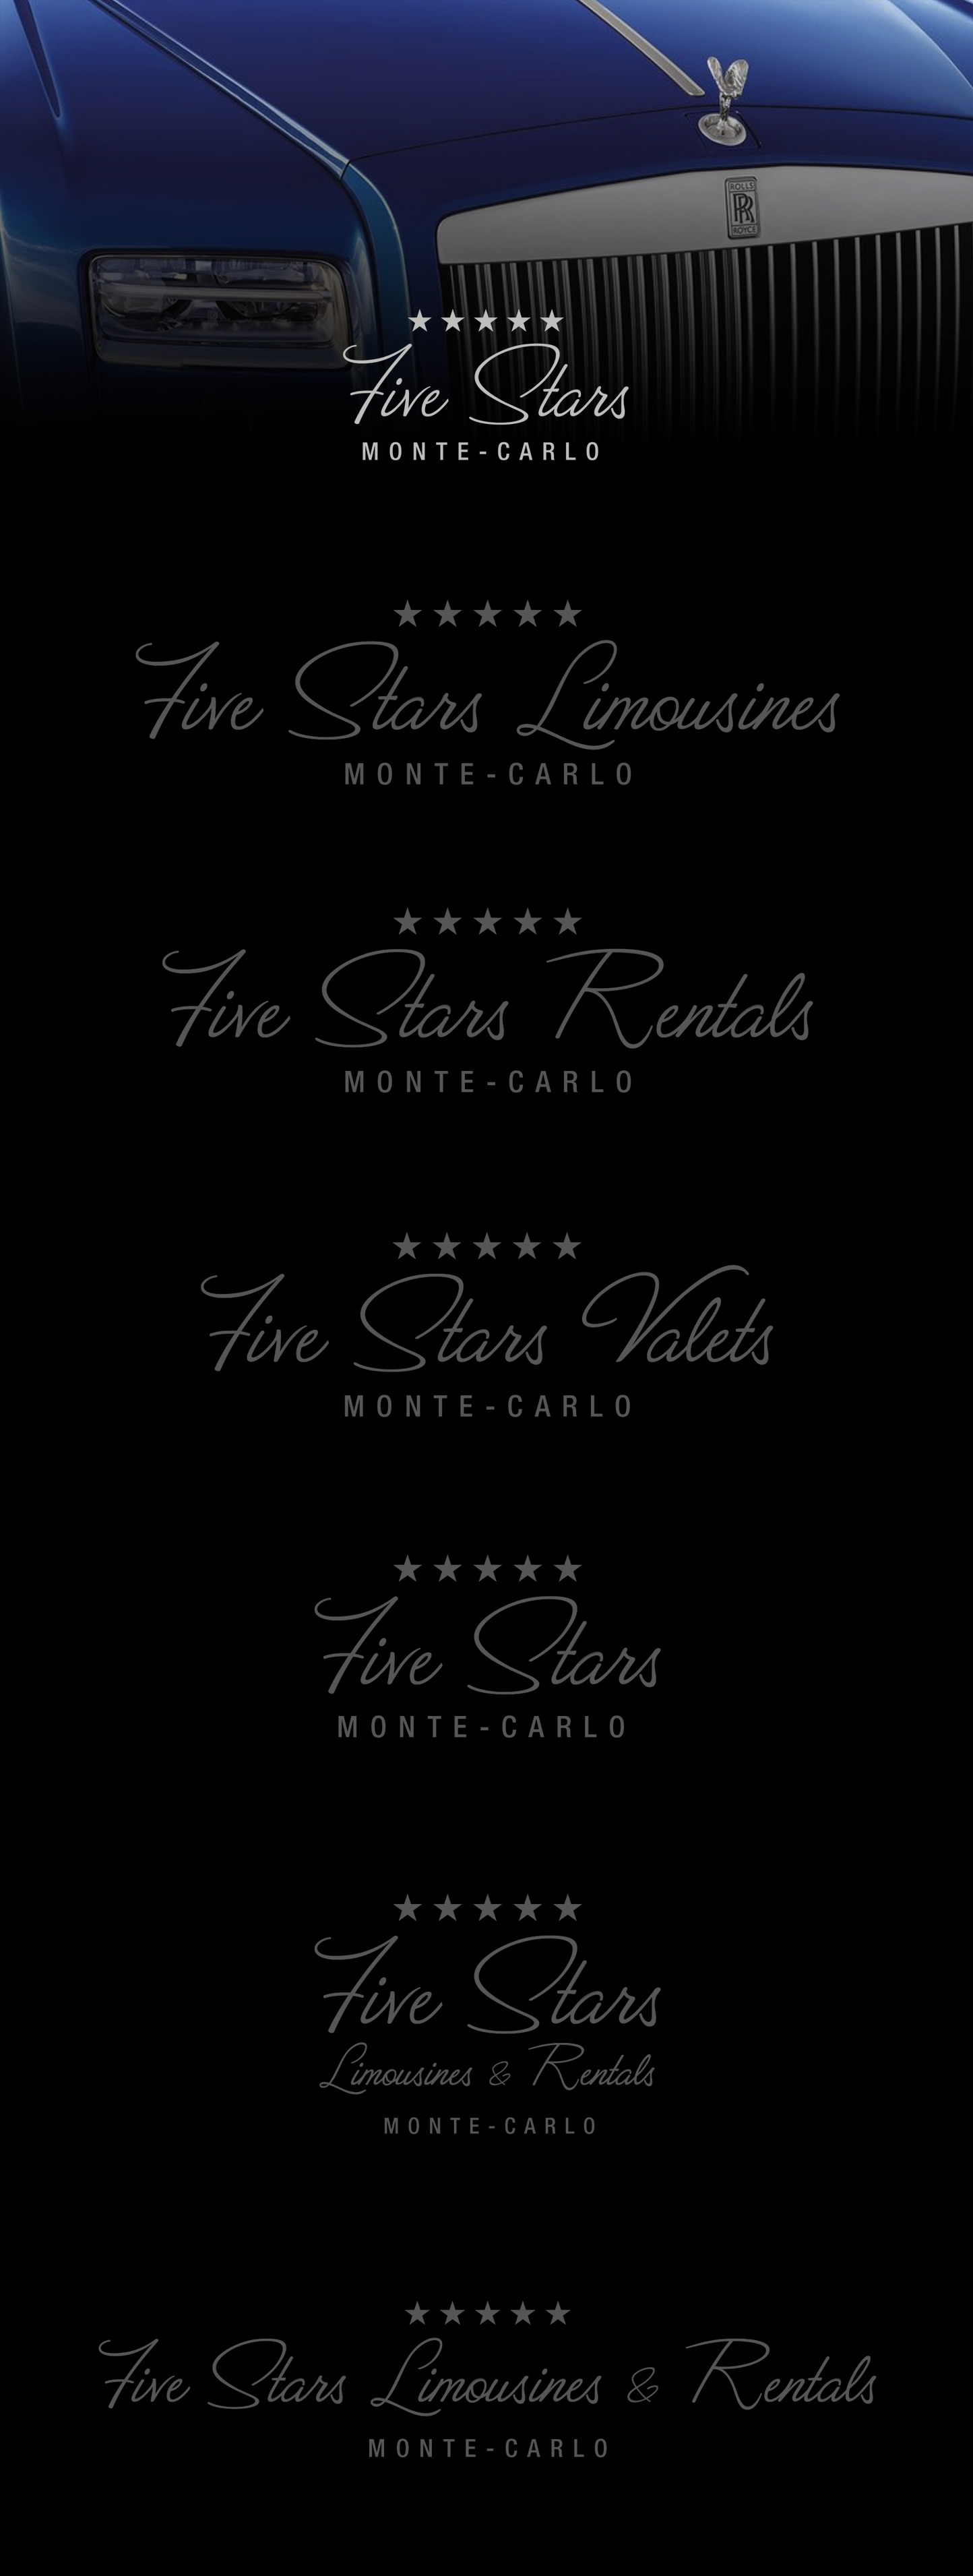 sublime-digital_five-stars-monte-carlo-identity-01